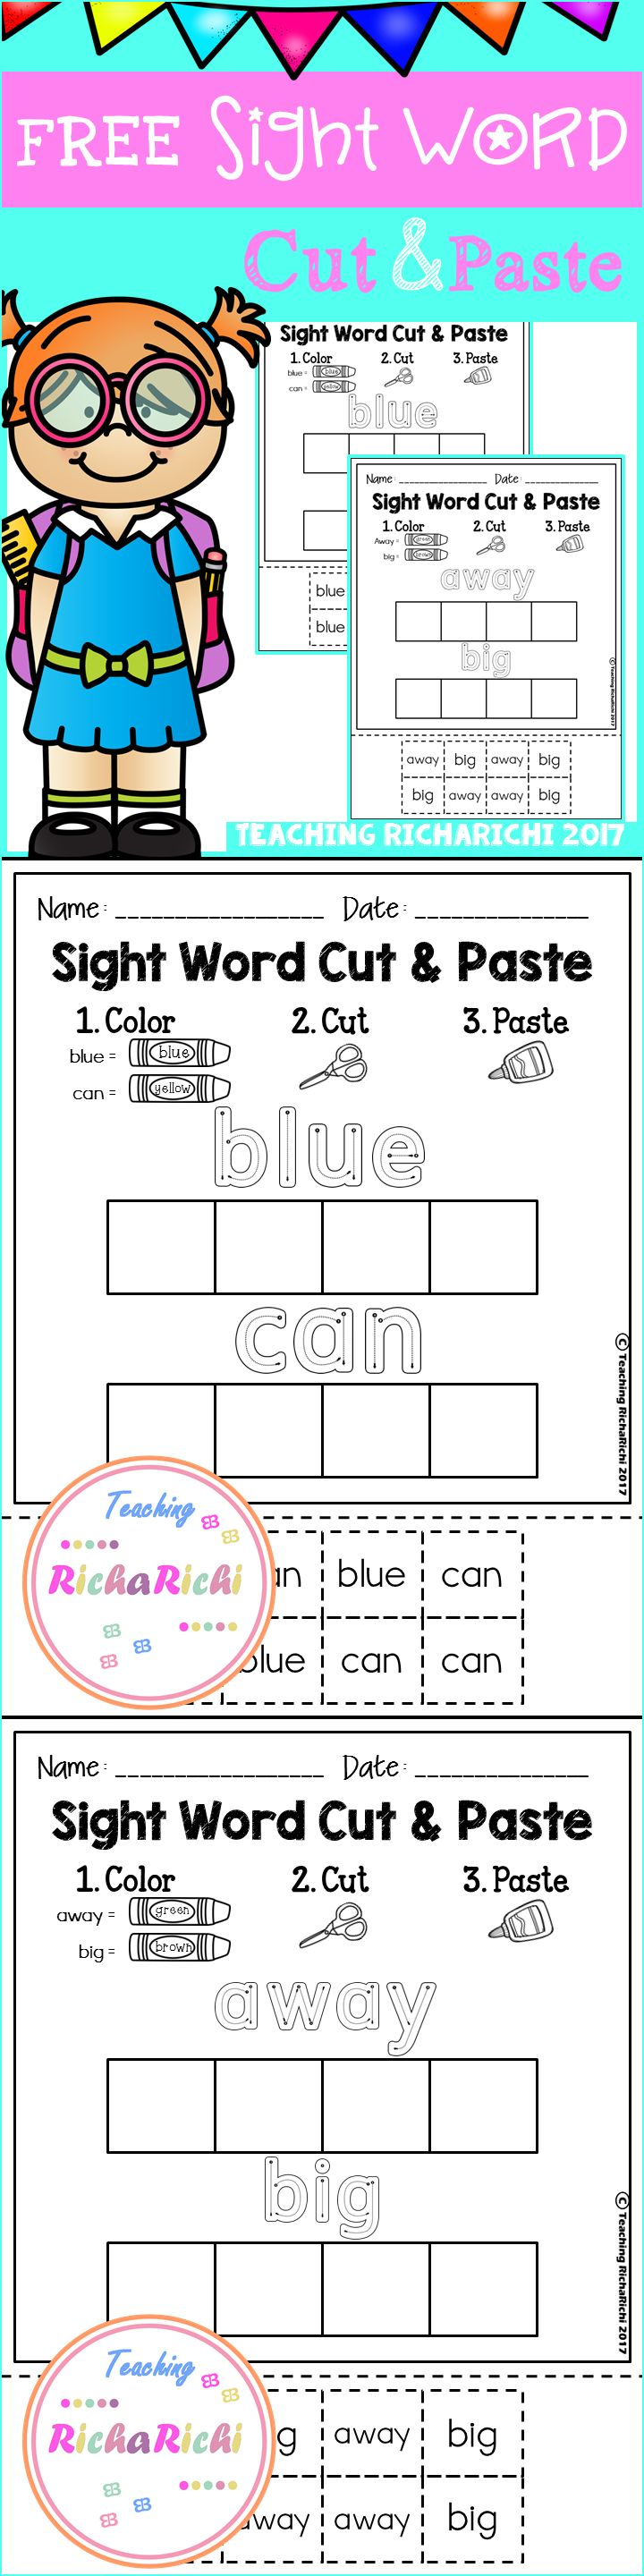 93 best Sight Words images on Pinterest | Word work, Literacy ...